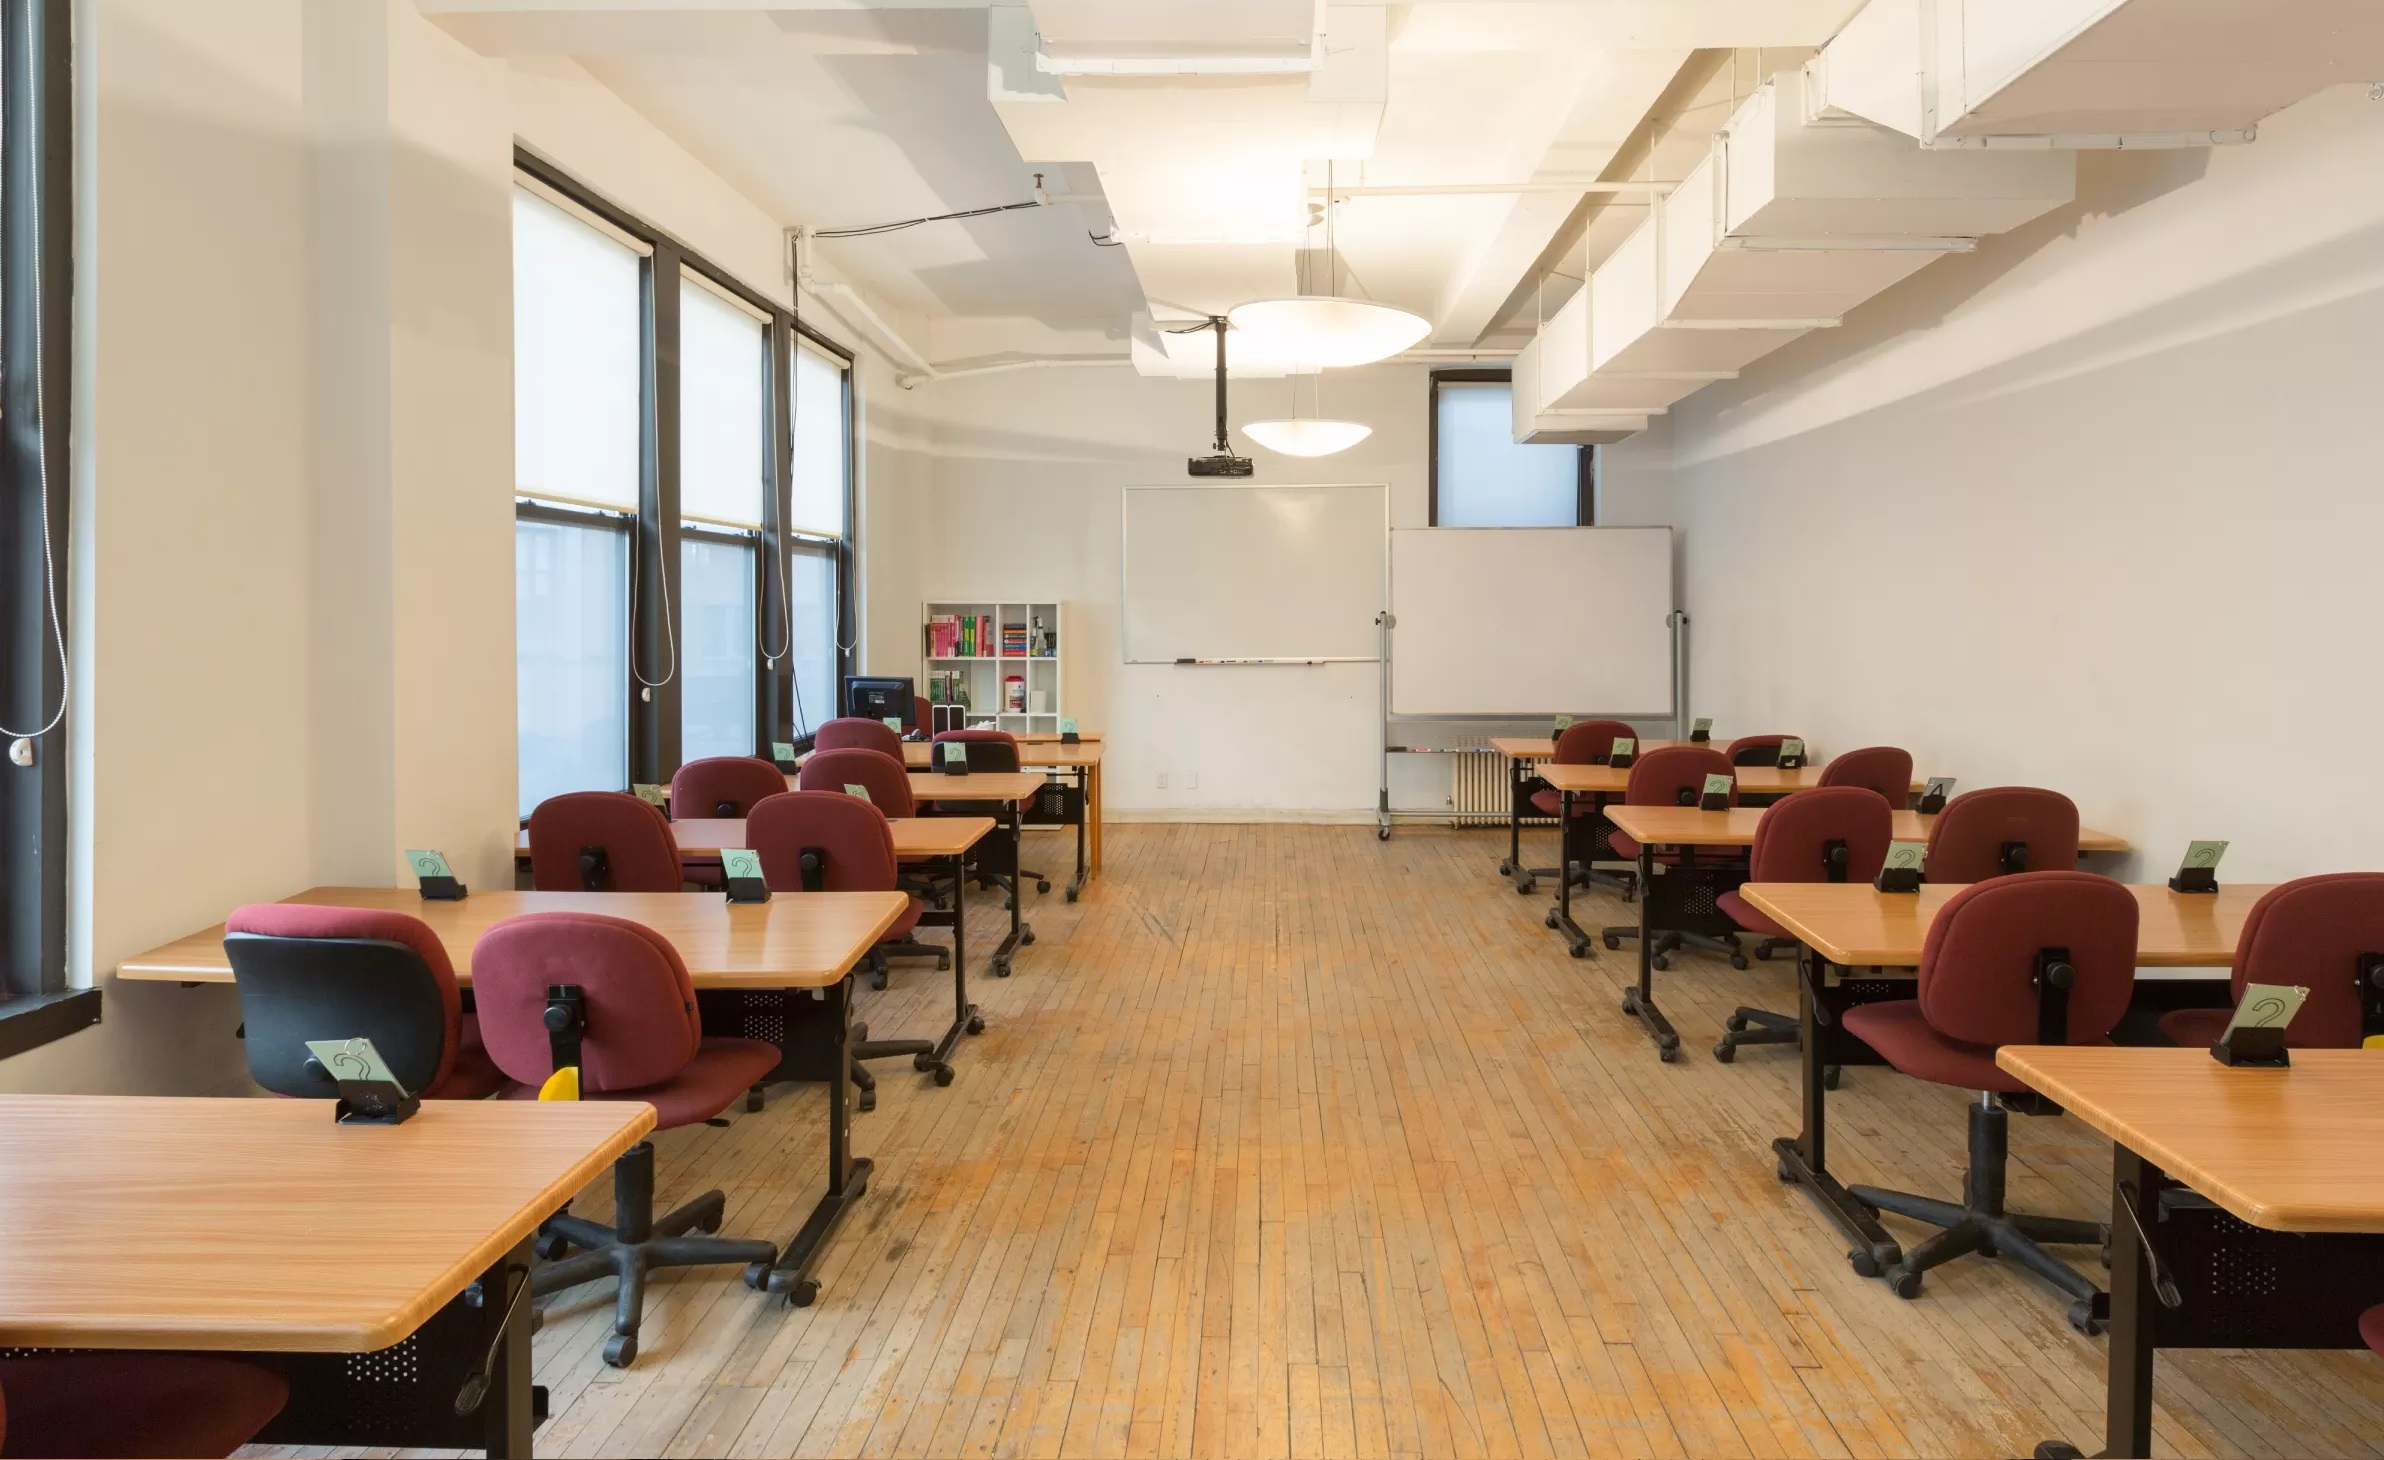 Fits 24 Chairs In Classroom Configuration